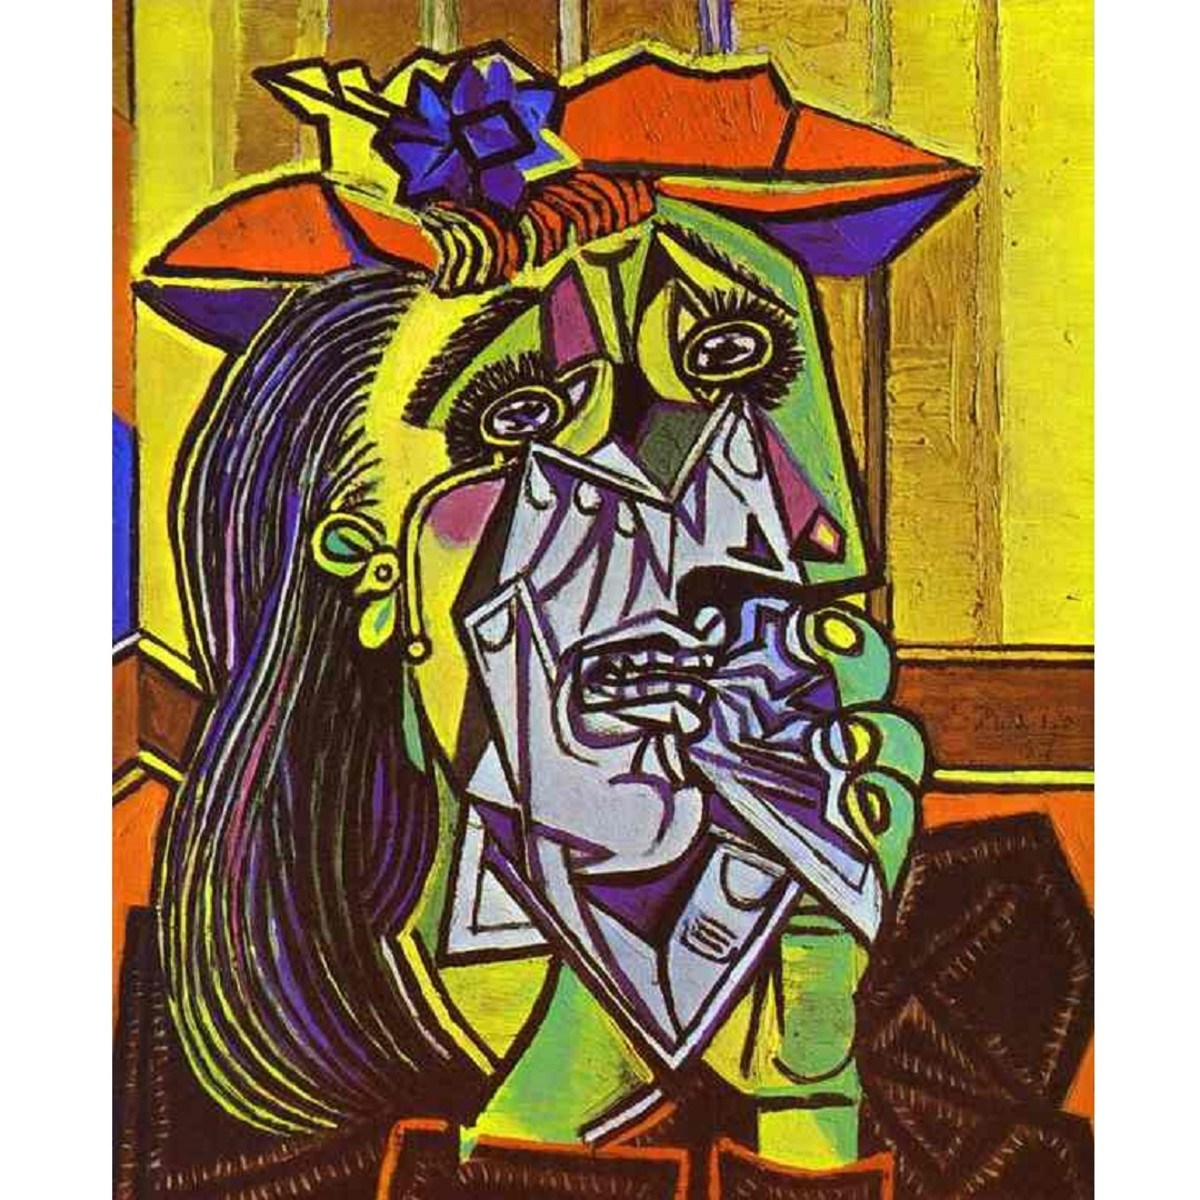 Pablo Picasso's The Weeping Woman